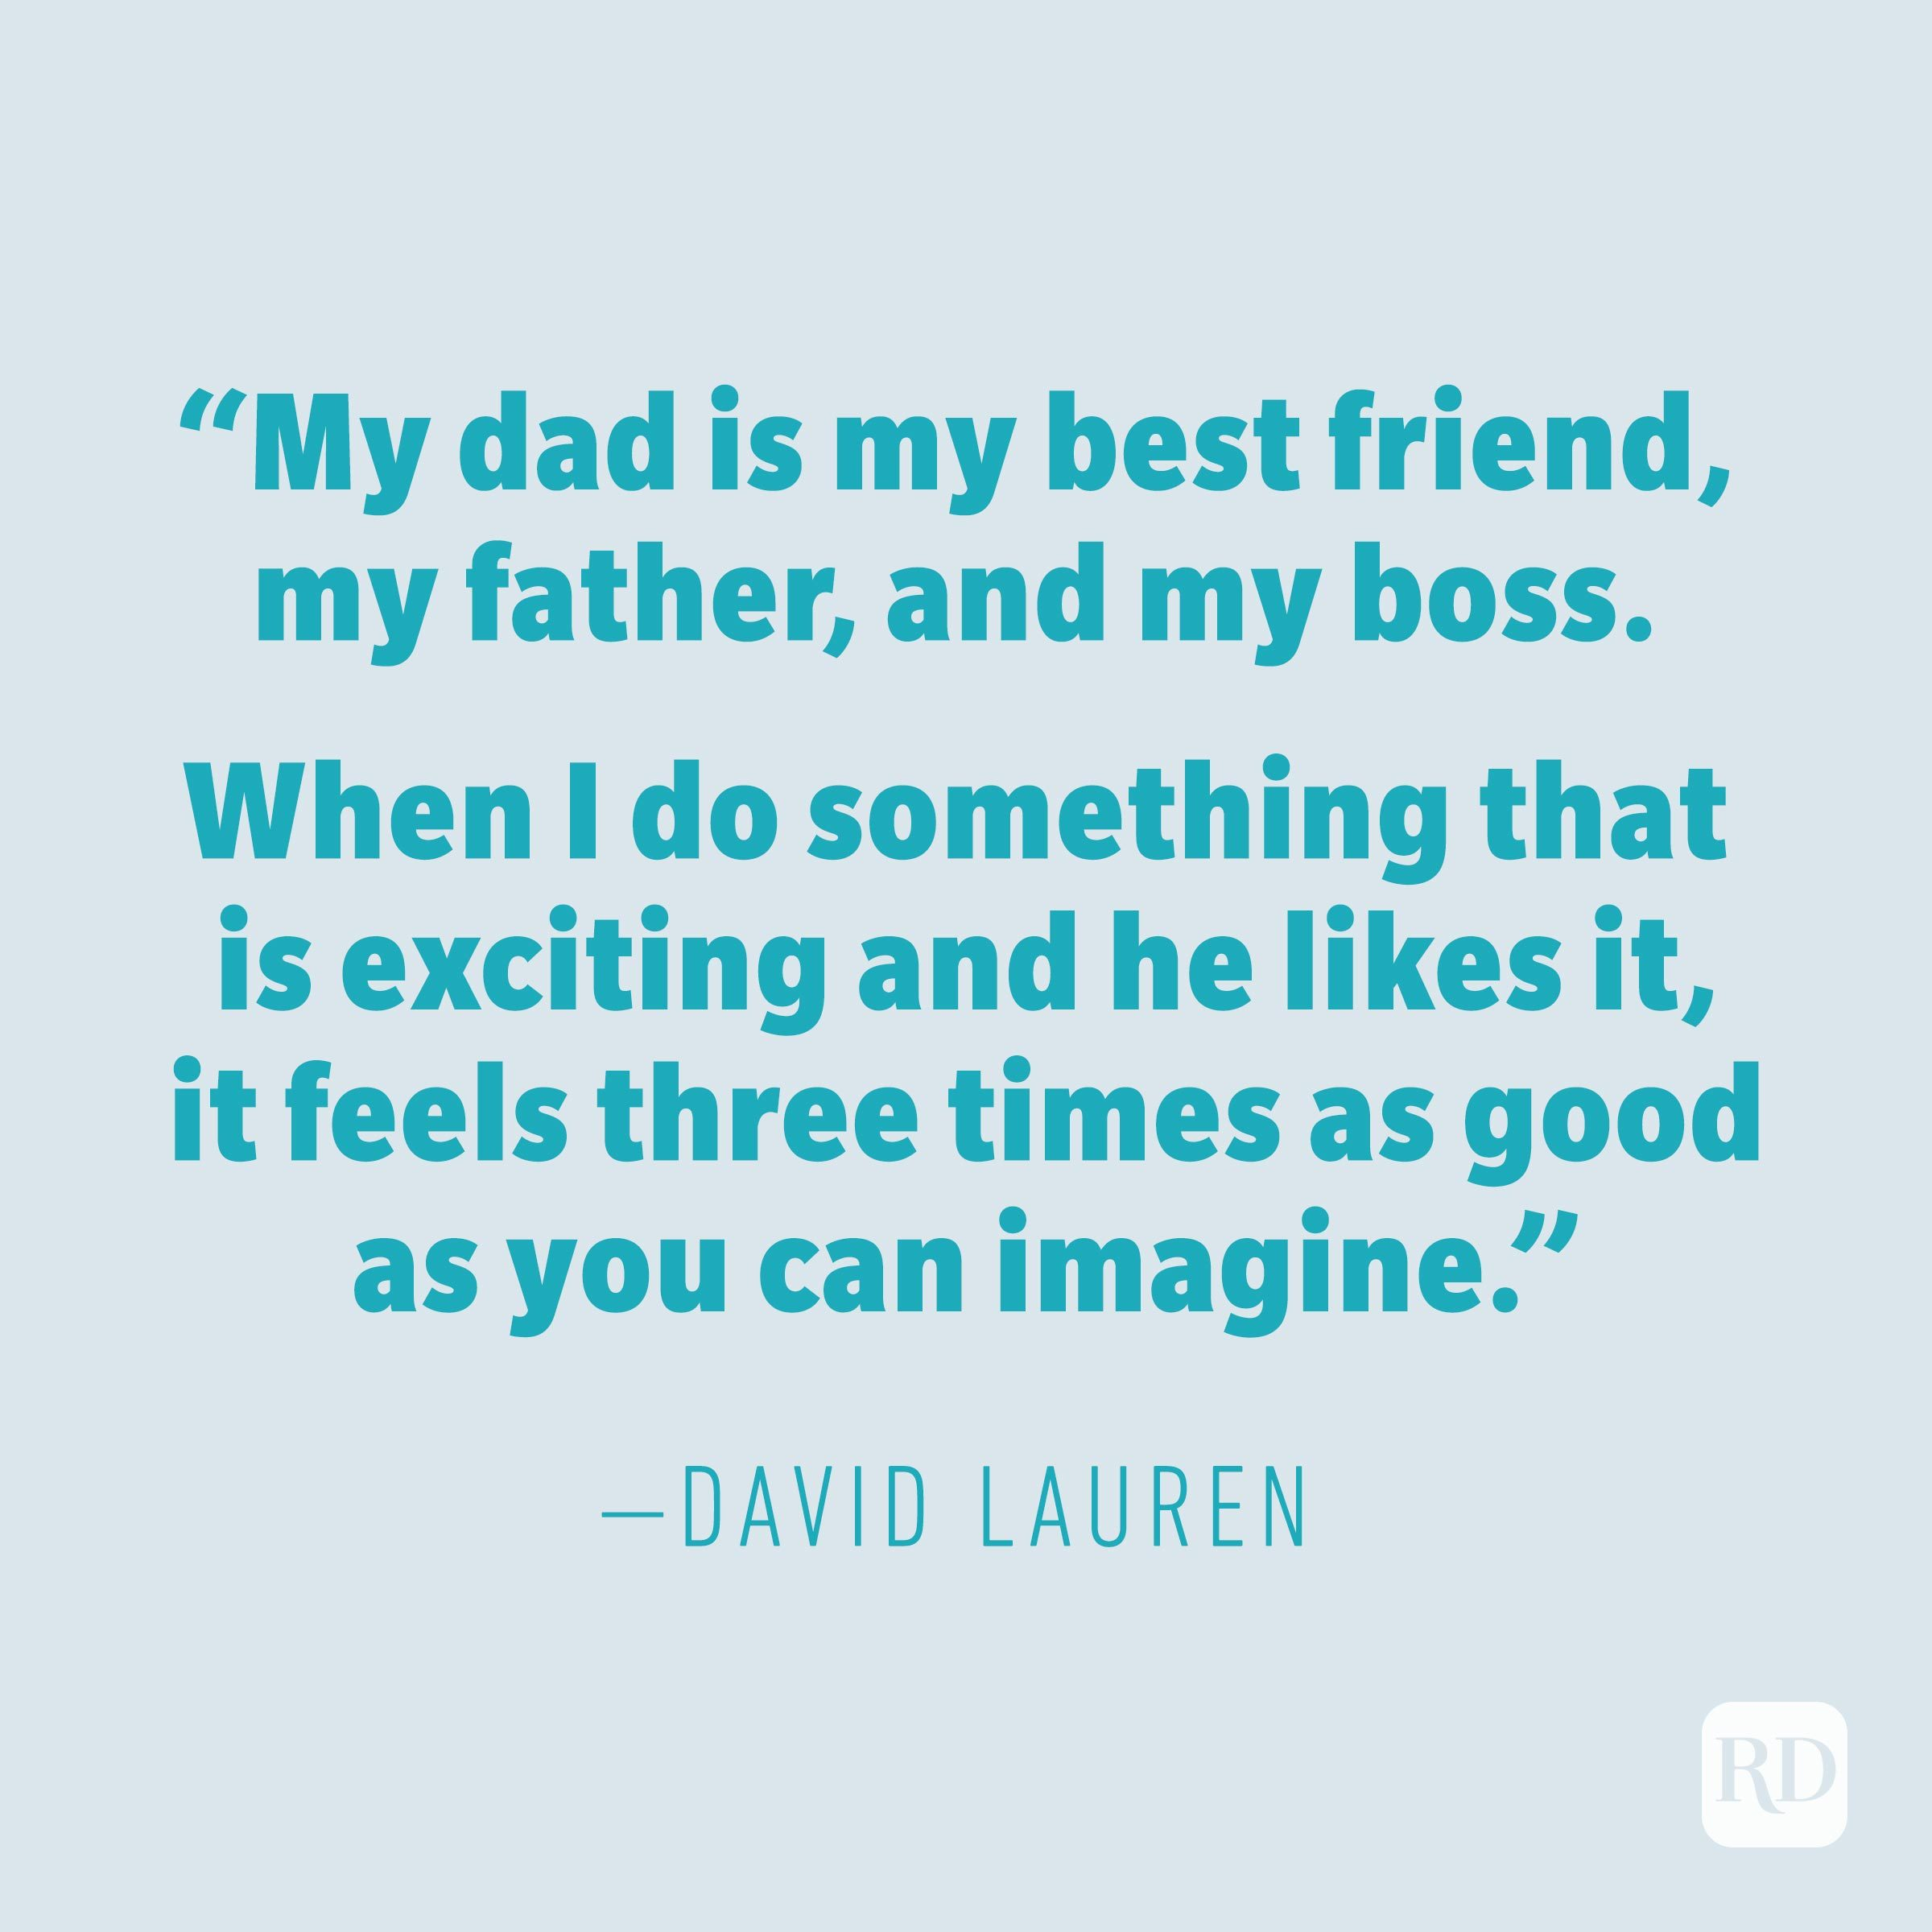 """My dad is my best friend, my father, and my boss. When I do something that is exciting and he likes it, it feels three times as good as you can imagine."" —DAVID LAUREN"